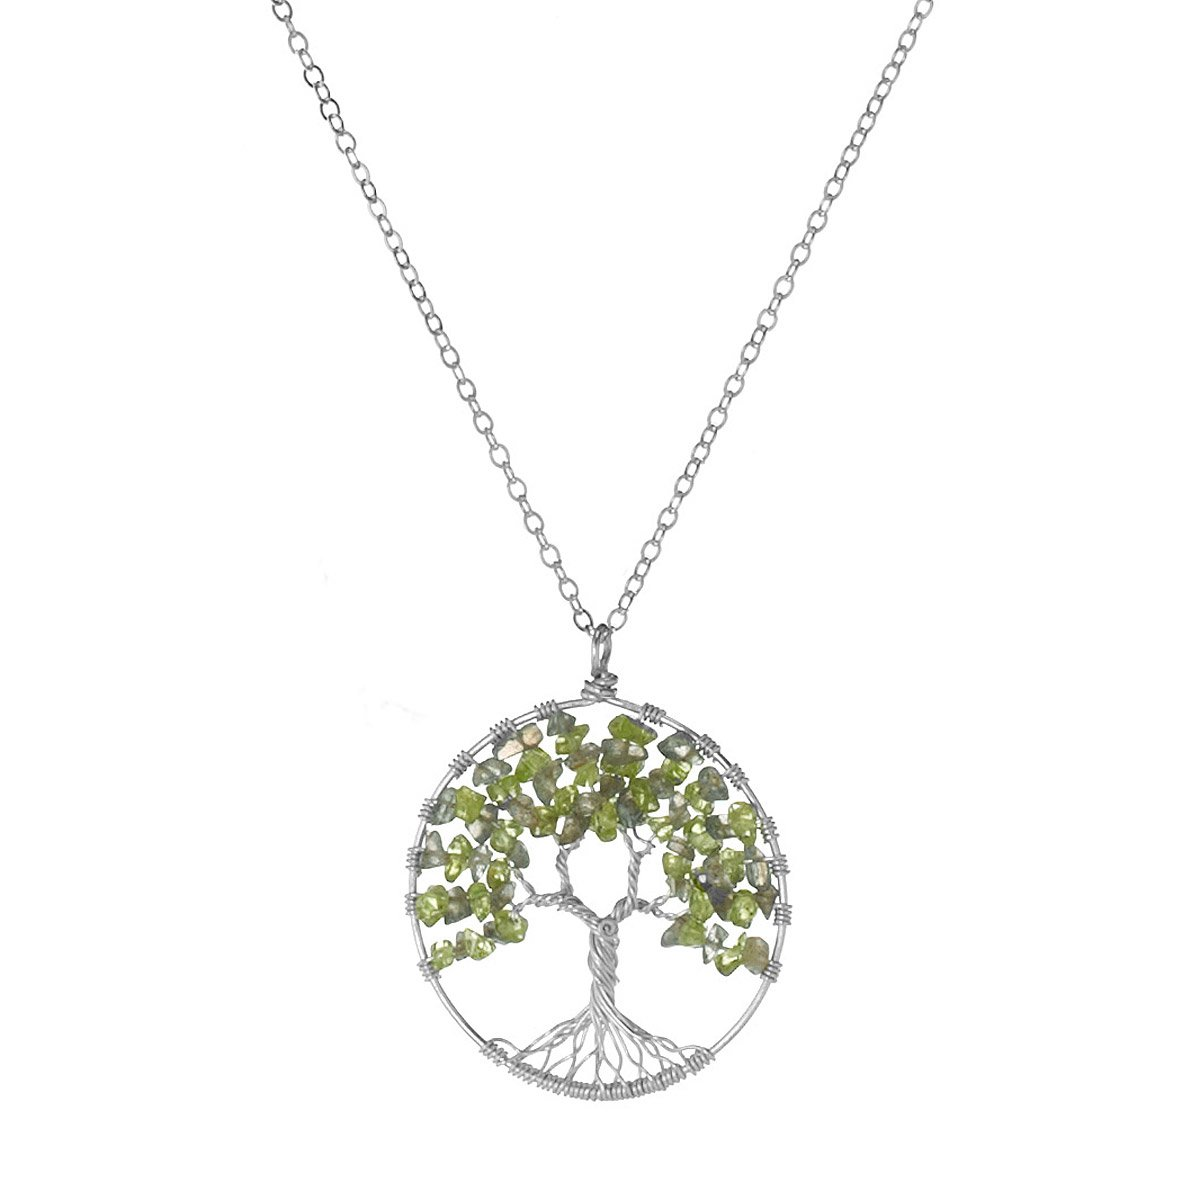 in life tree south small buy online loading zoom necklace unexpected box of